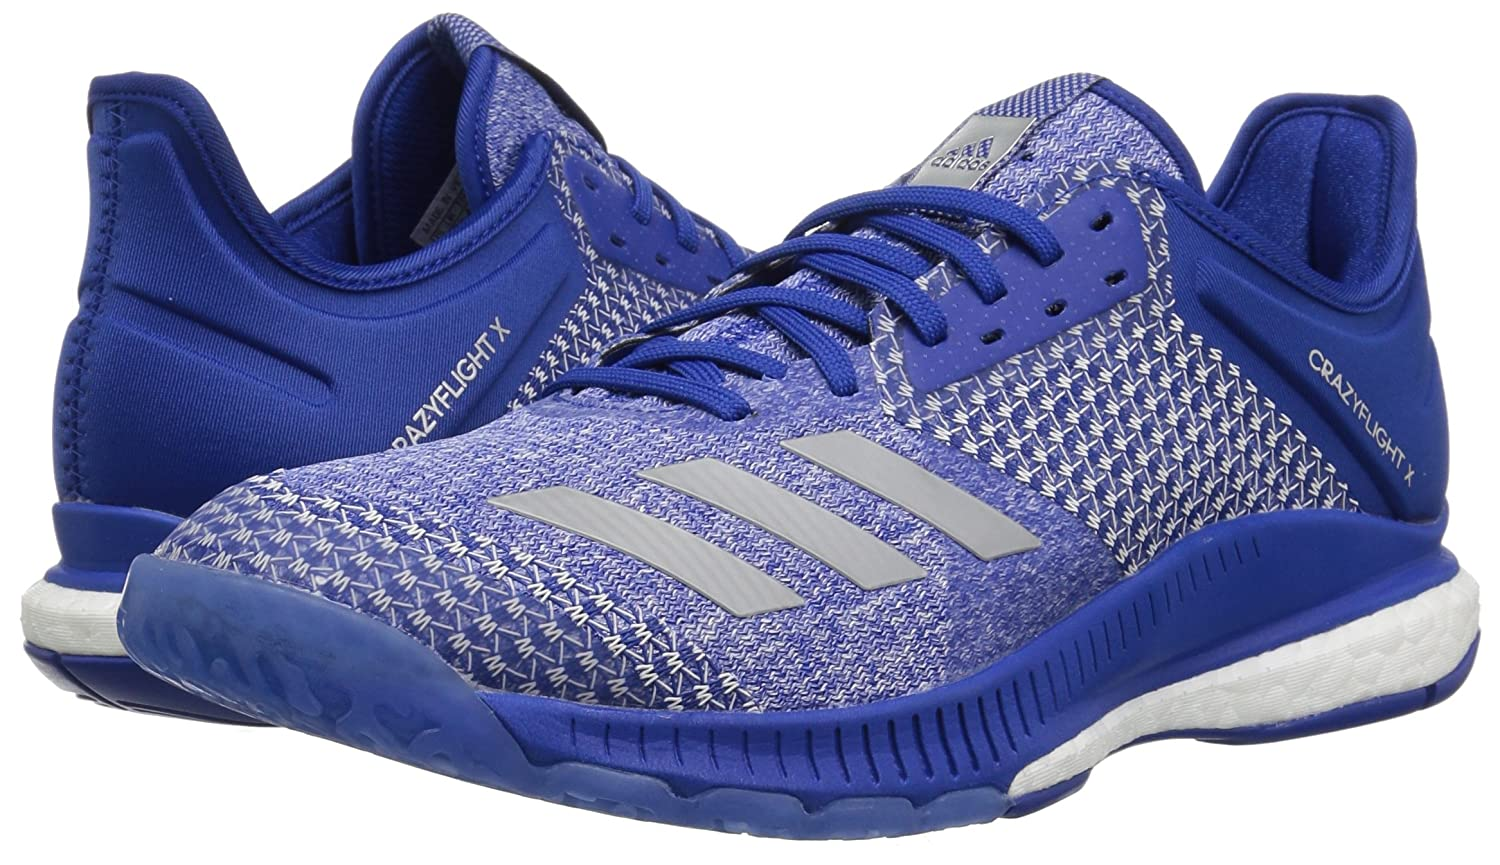 adidas Women's B(M) Crazyflight X 2 Volleyball Shoe B077X7XQHG 7.5 B(M) Women's US|Collegiate Royal/Silver Metallic/White c05201